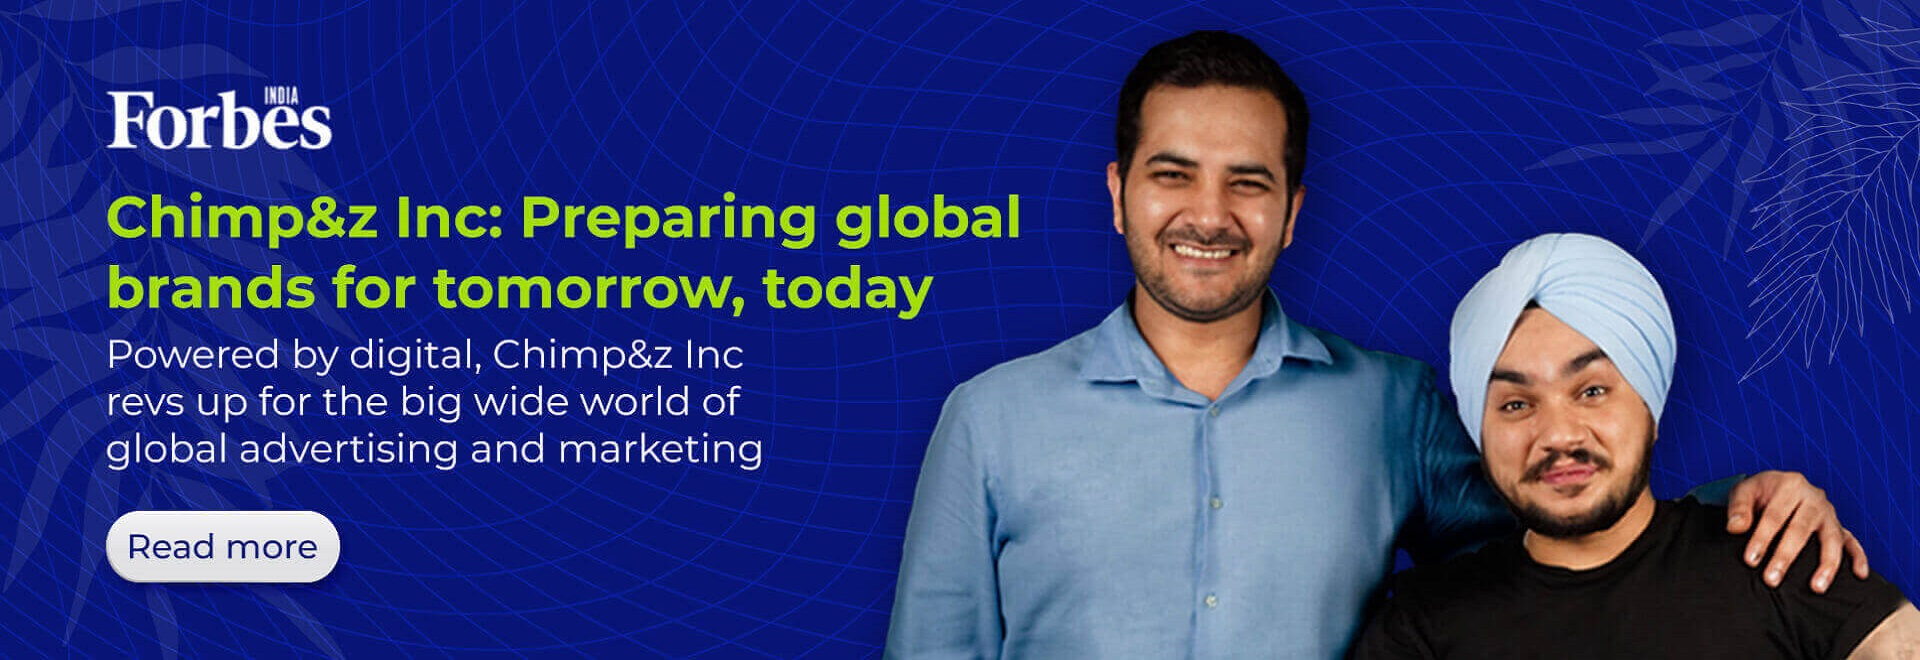 chimpz-inc-preparing-global-brands-for-tomorrow-today